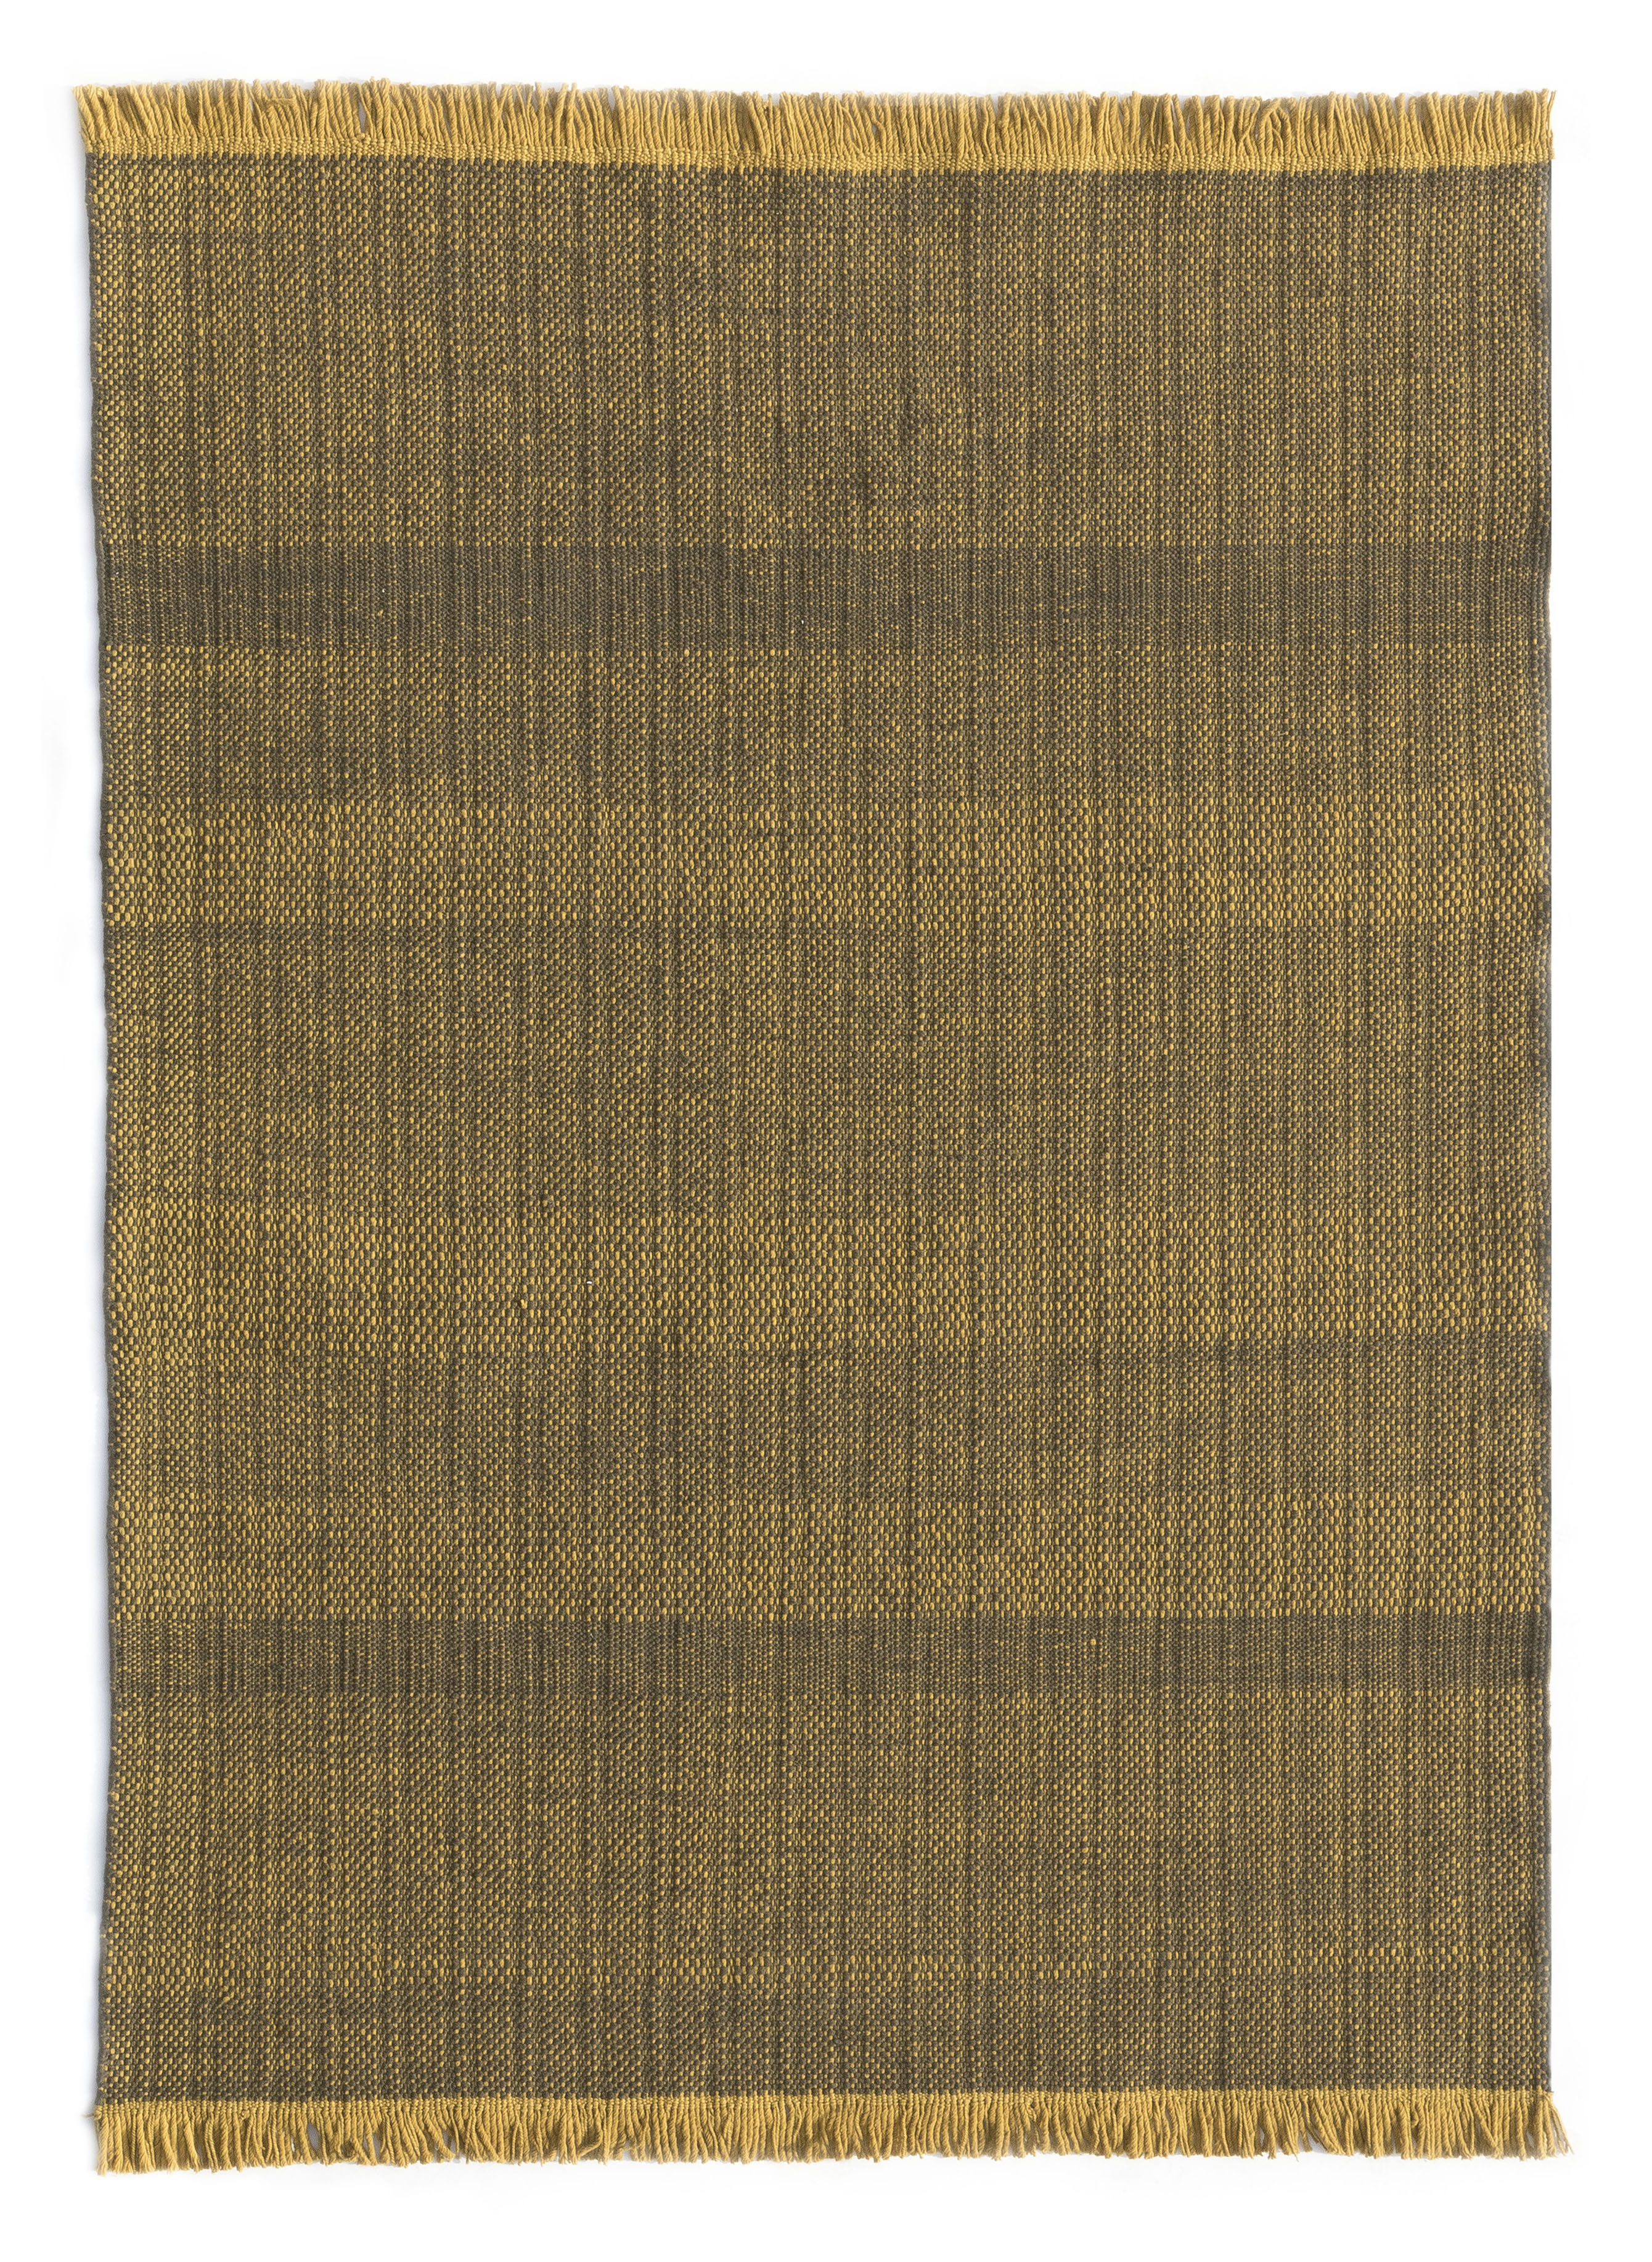 Decoration - Rugs - Tres Outdoor rug - / 200 x 300 cm by Nanimarquina - Mustard - Polythene